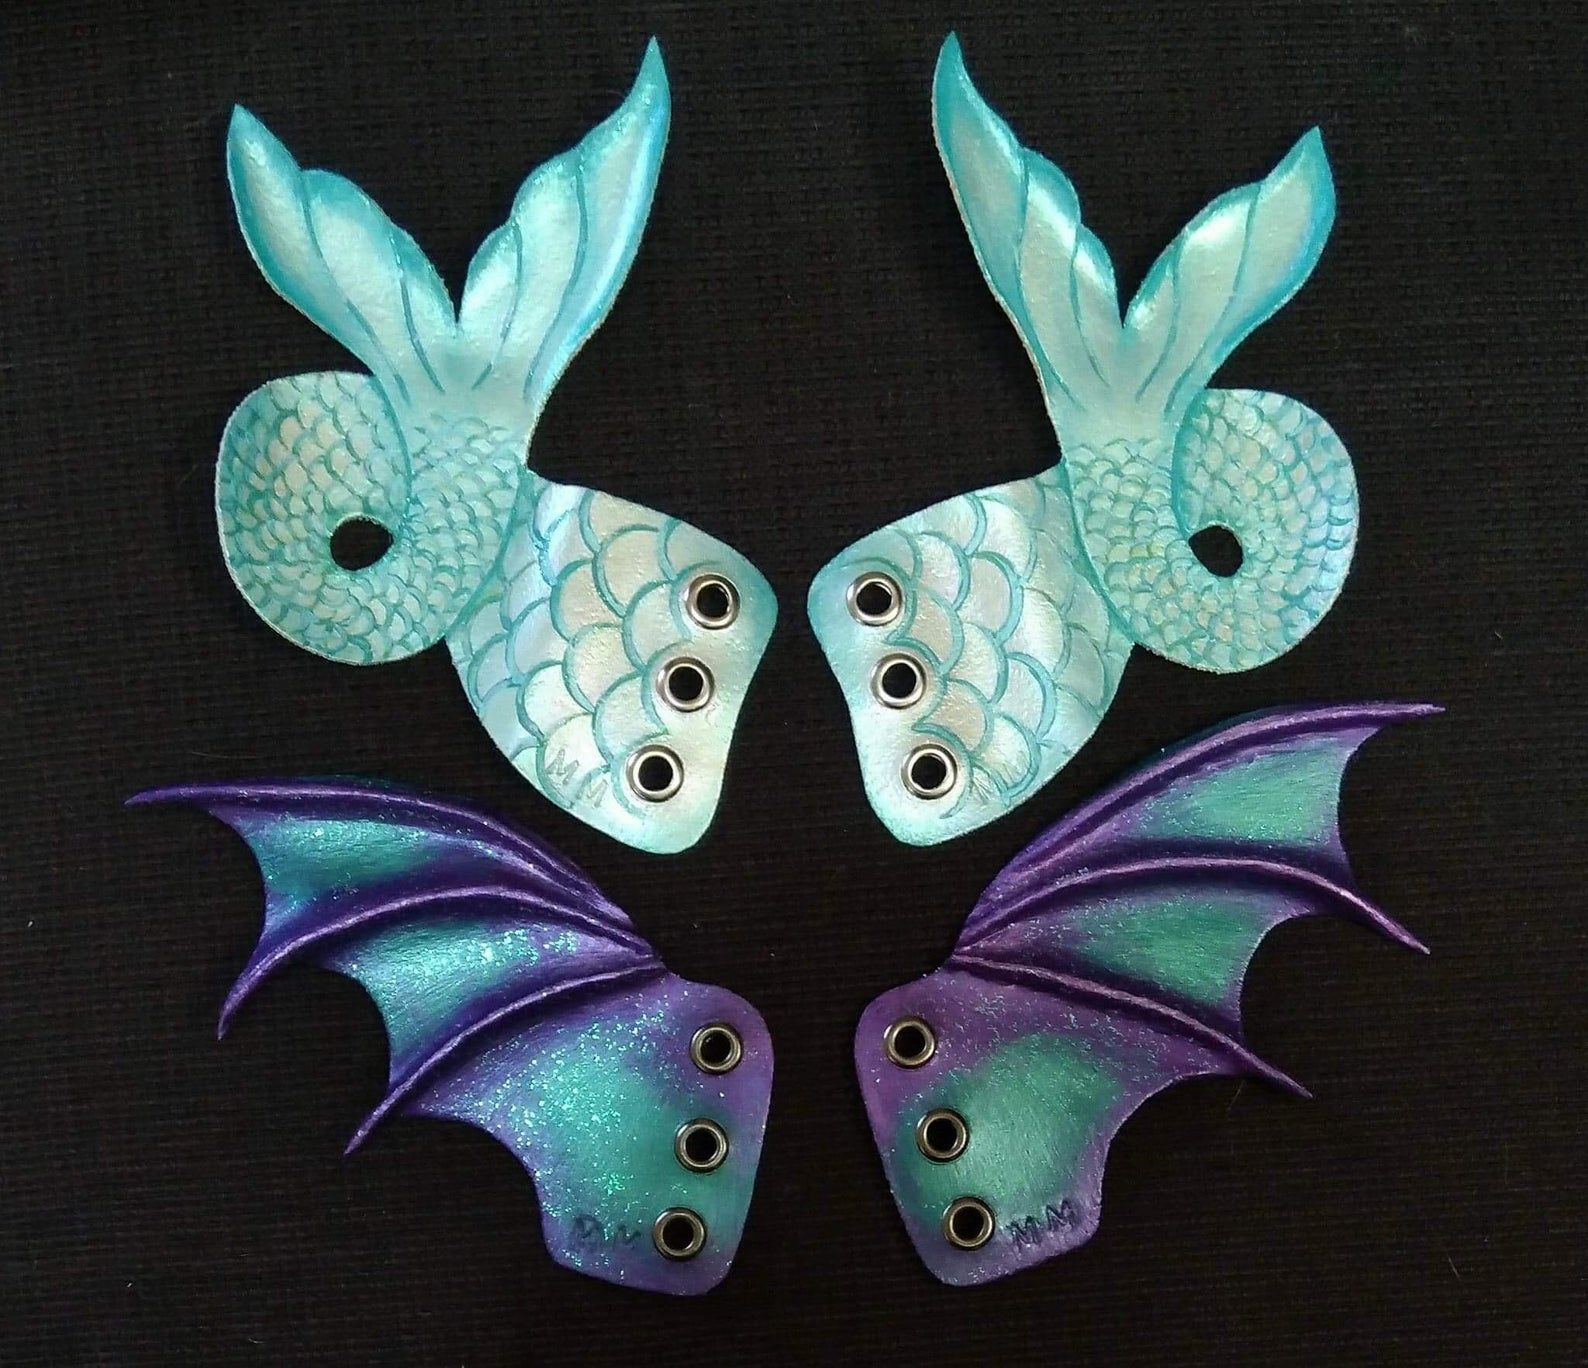 Boot Bat wings with green thread.